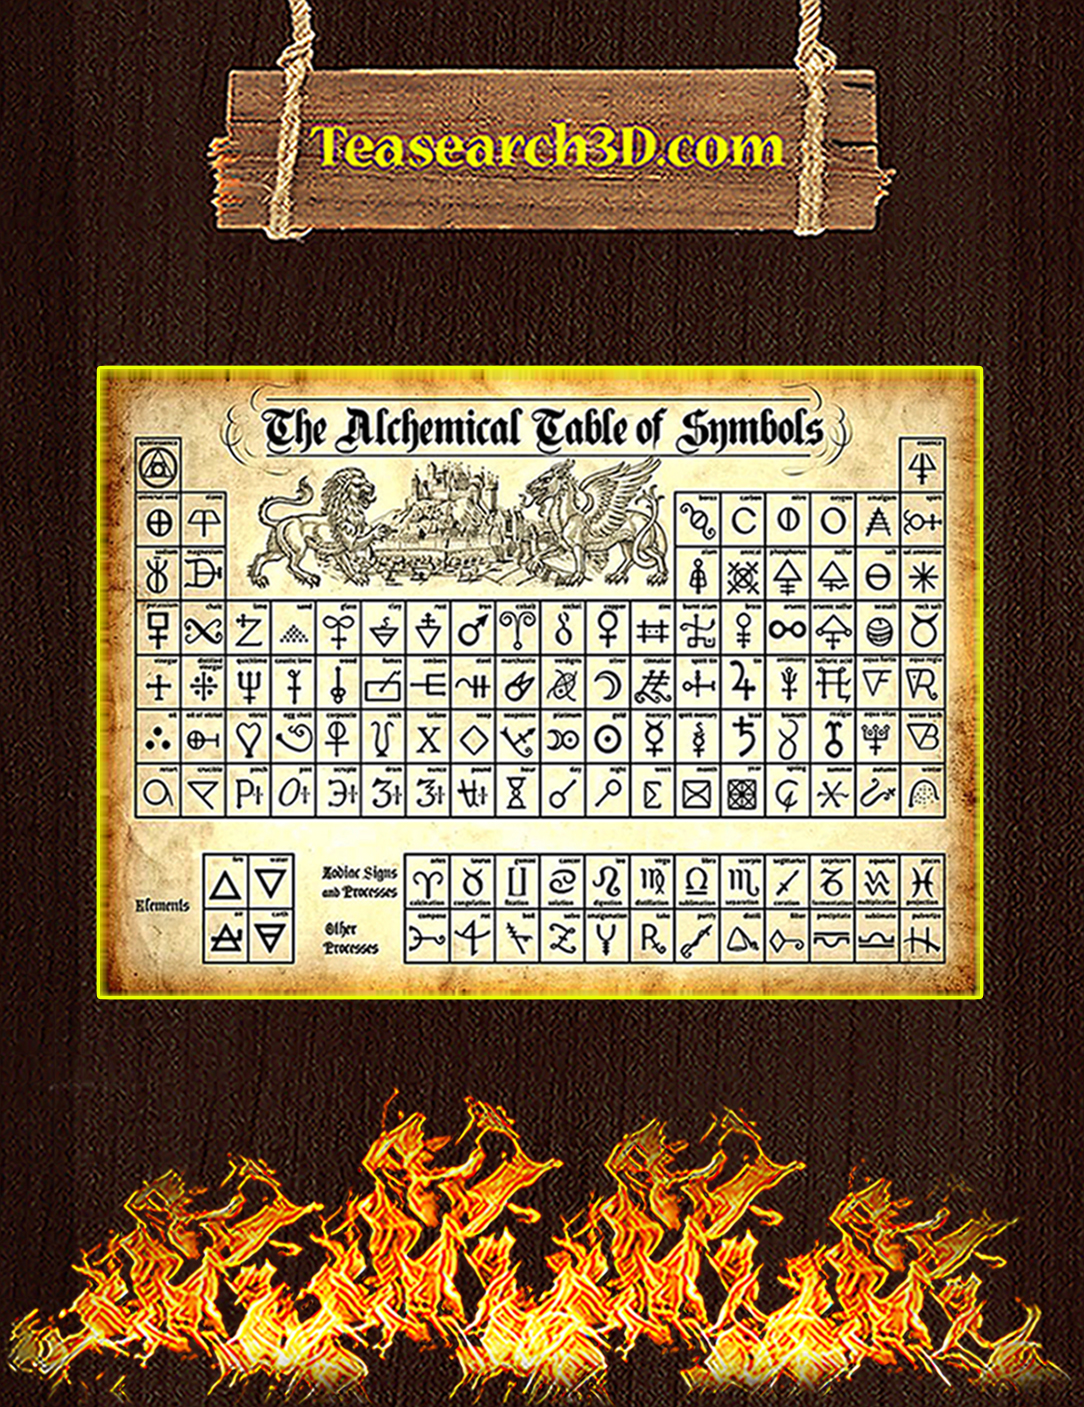 The alchemical table of symbols poster A2